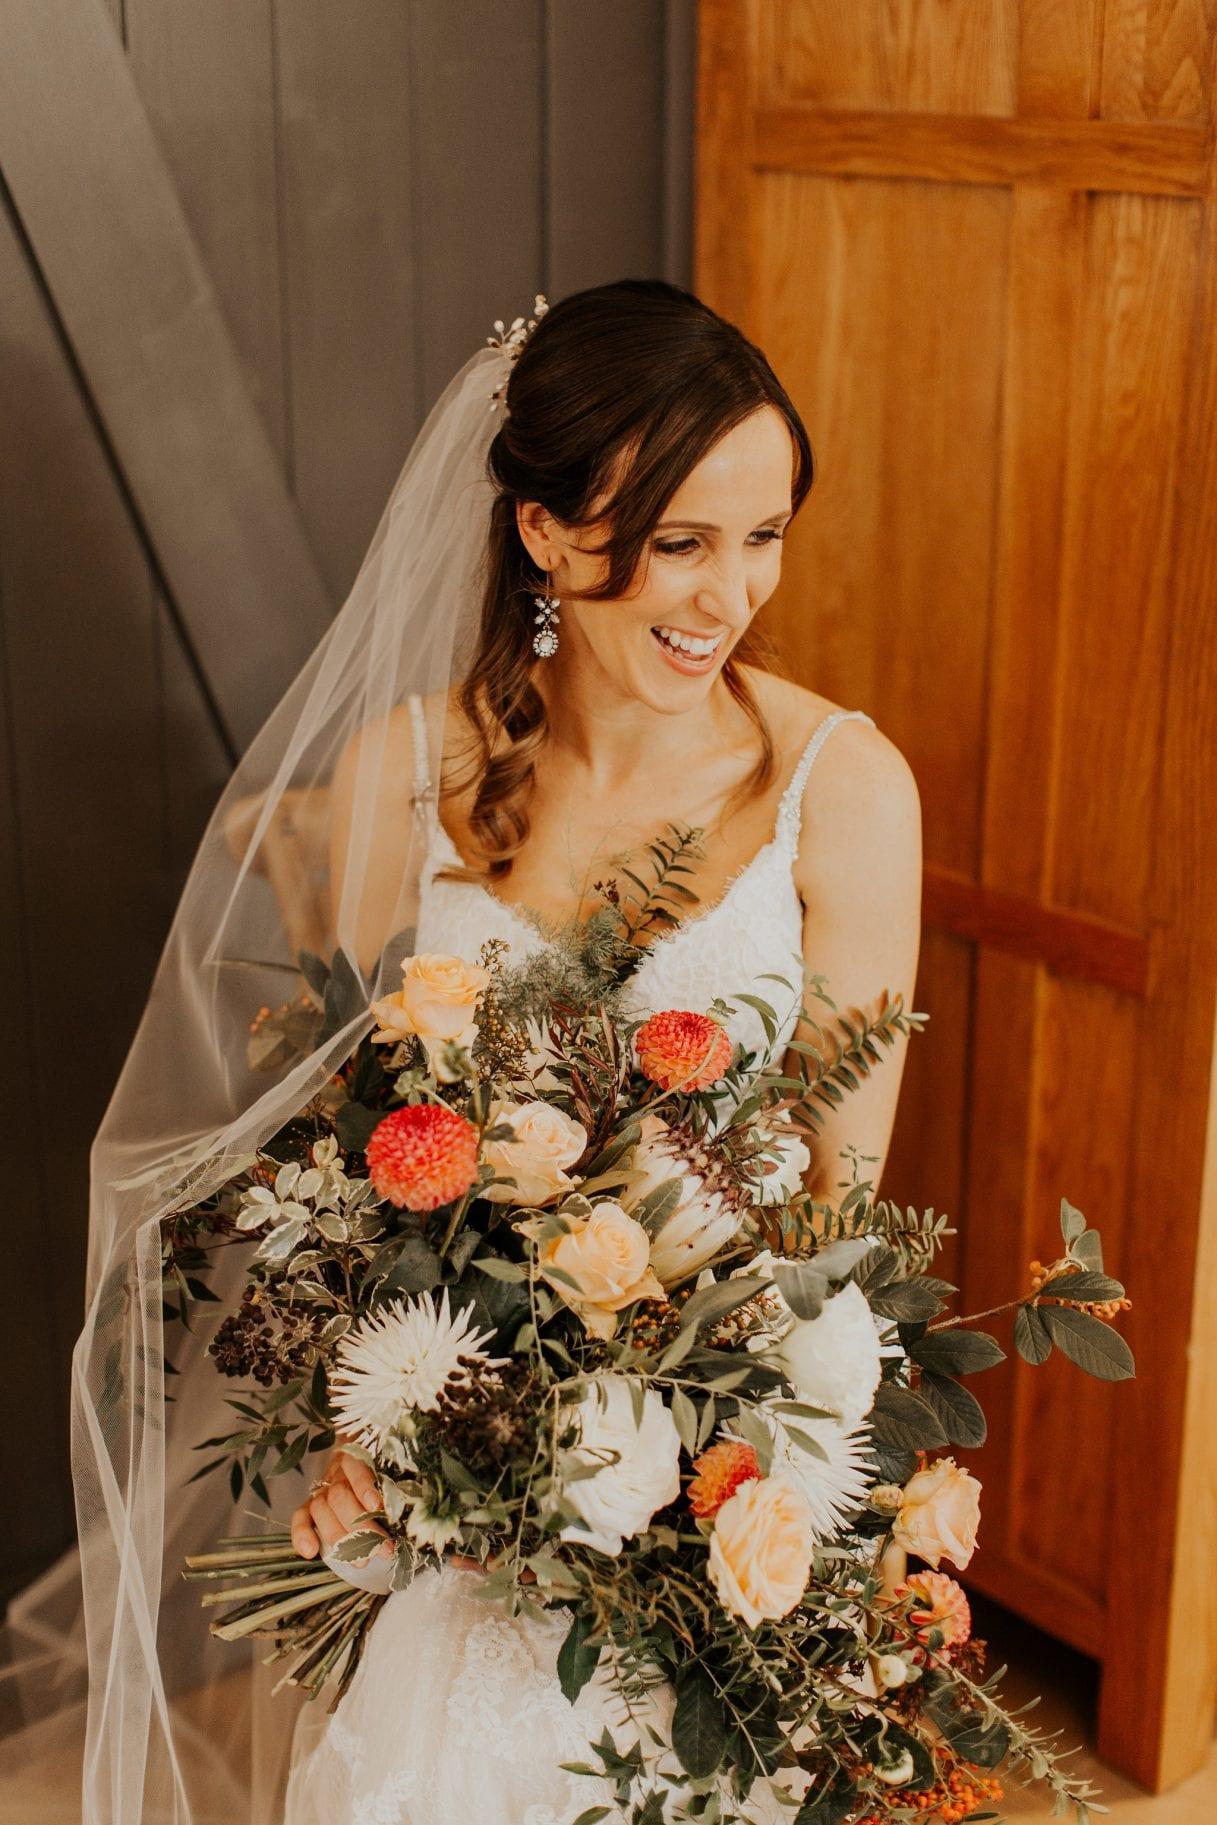 Bride with autumn bouquet of rose hips, proteas dahlias, and foraged greenery by Kim Chan Events